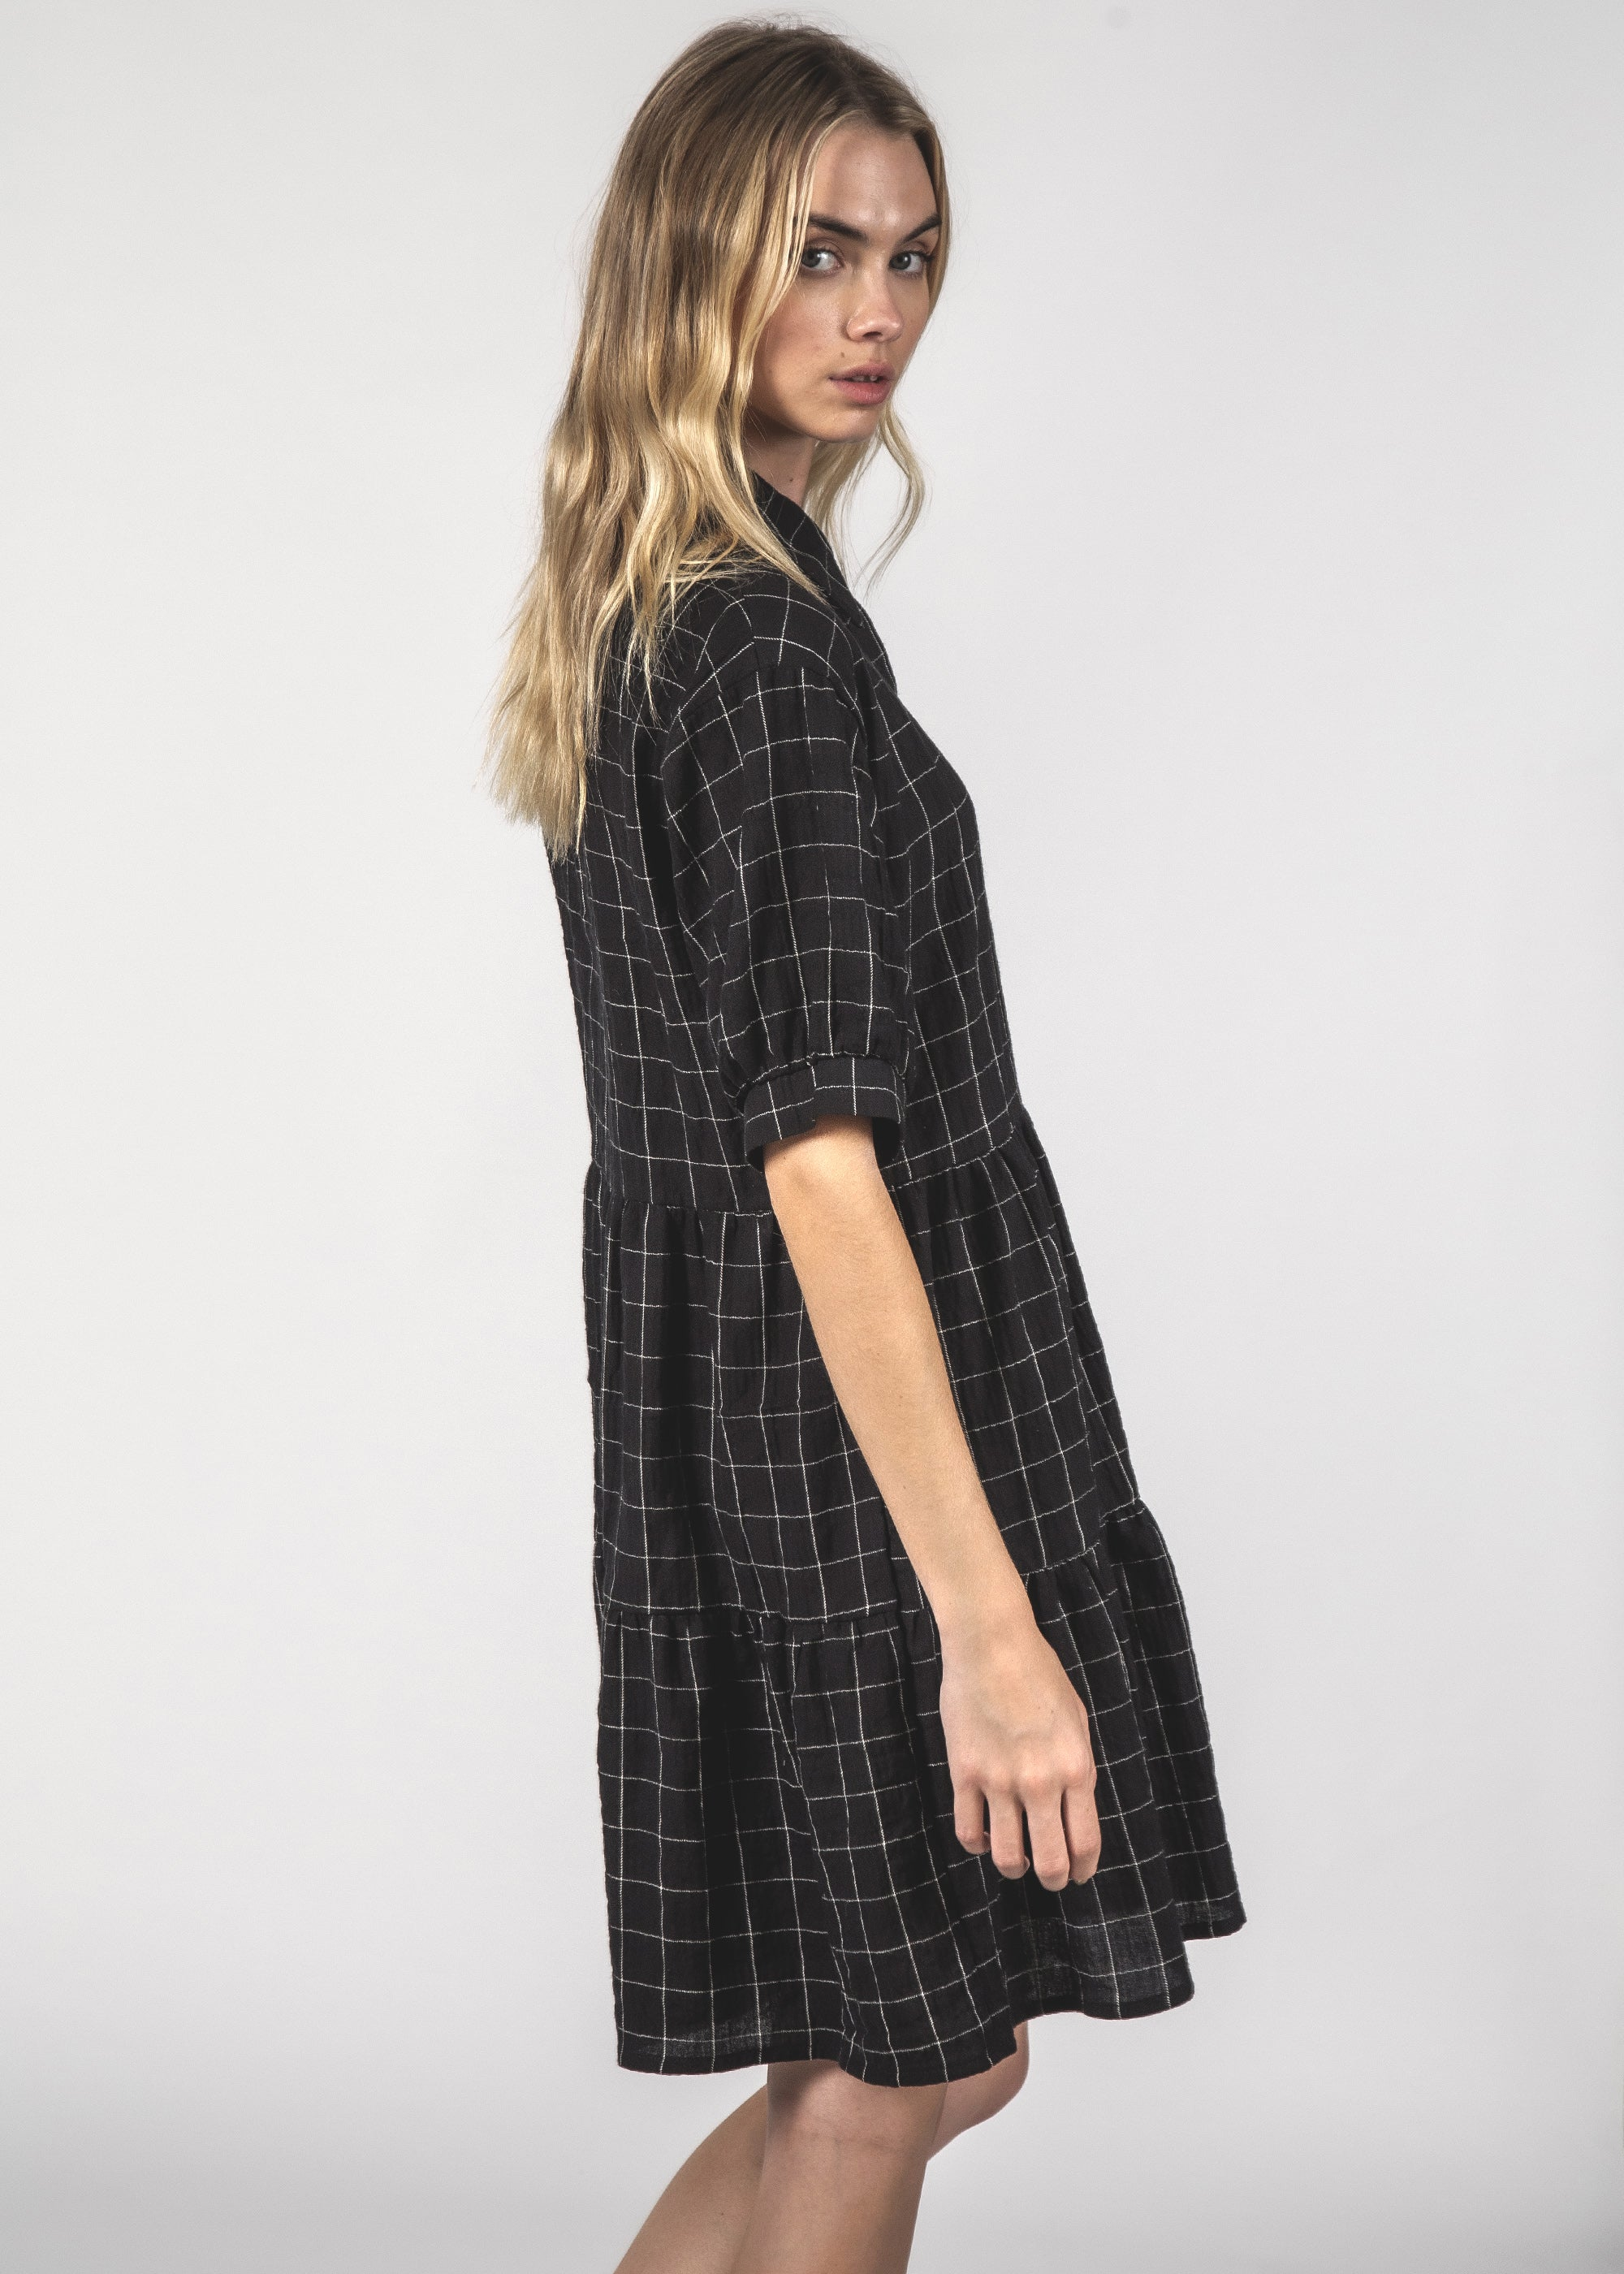 THE NOVA DRESS - BLACK GRID